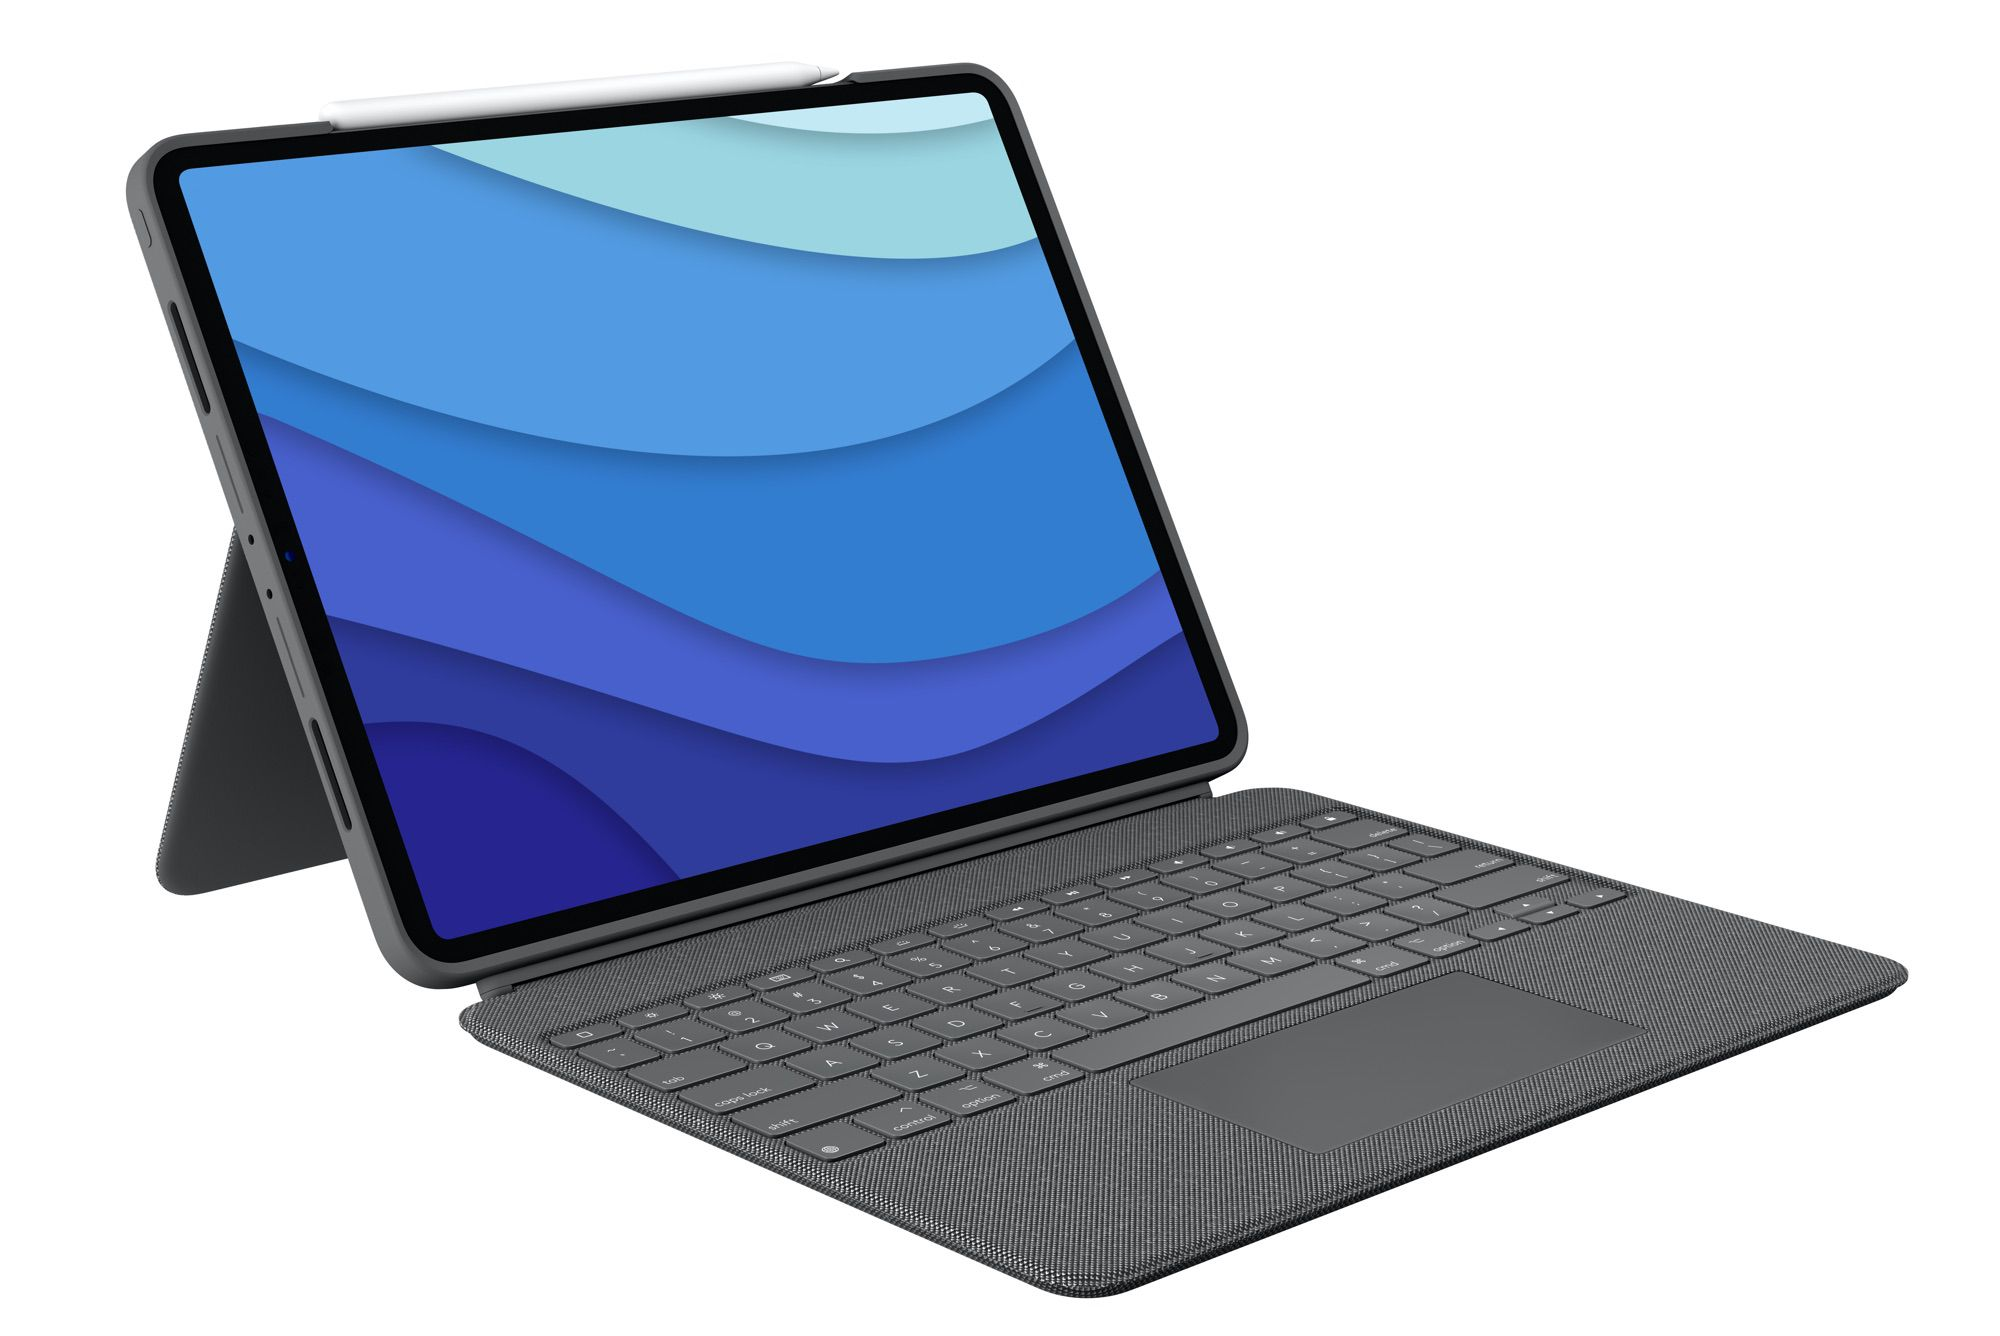 Logitech is launching the Combo Touch keyboard and trackpad case for the latest iPad devices